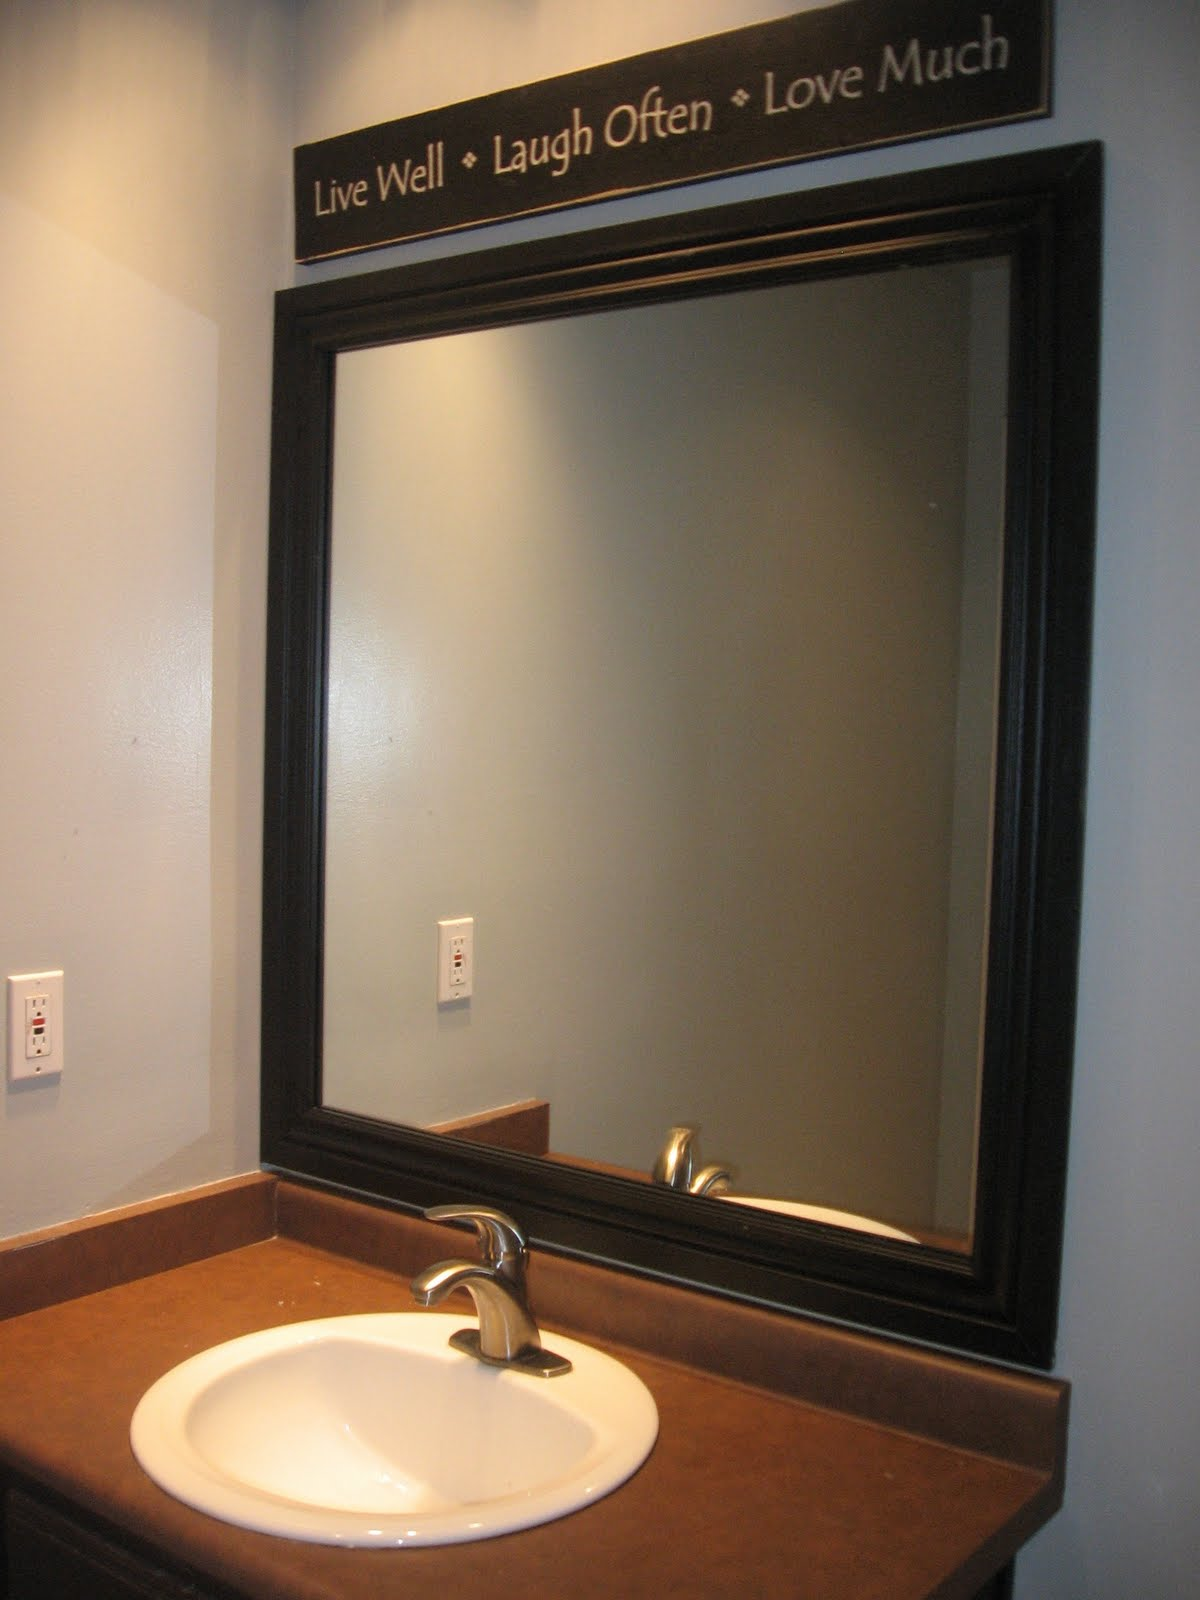 bathroom ideas inspirational how to frame a bathroom mirror with rh wesewthrifty blogspot com